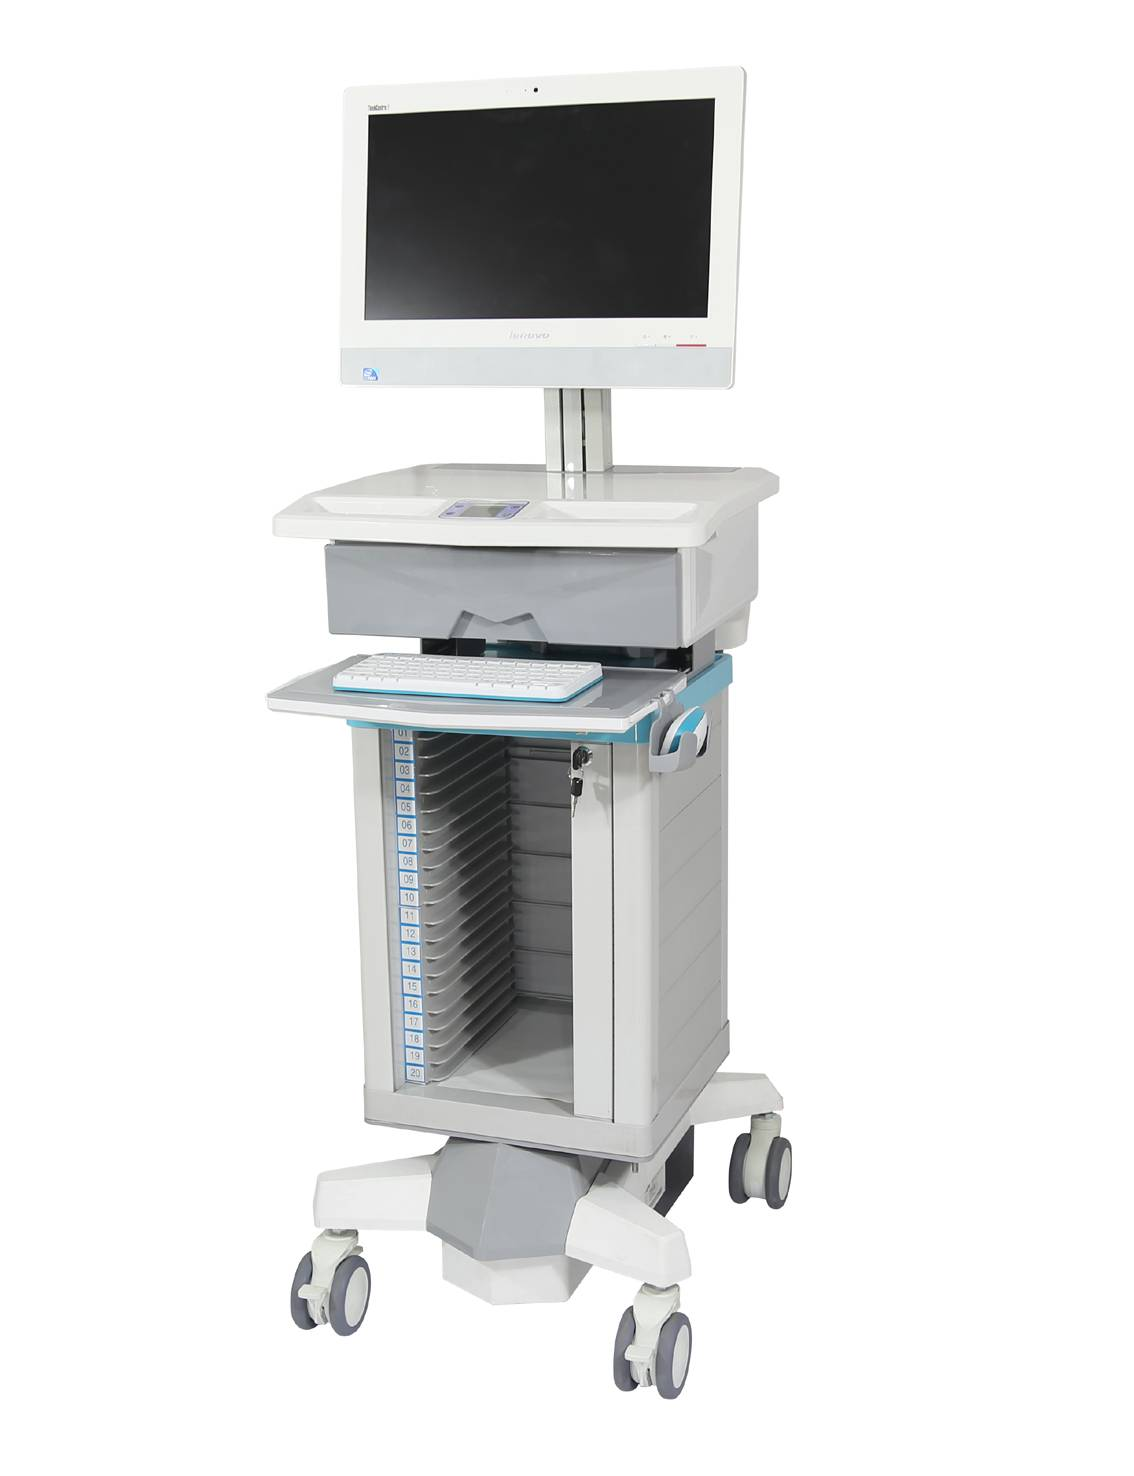 Dossier All-in-One PC Cart